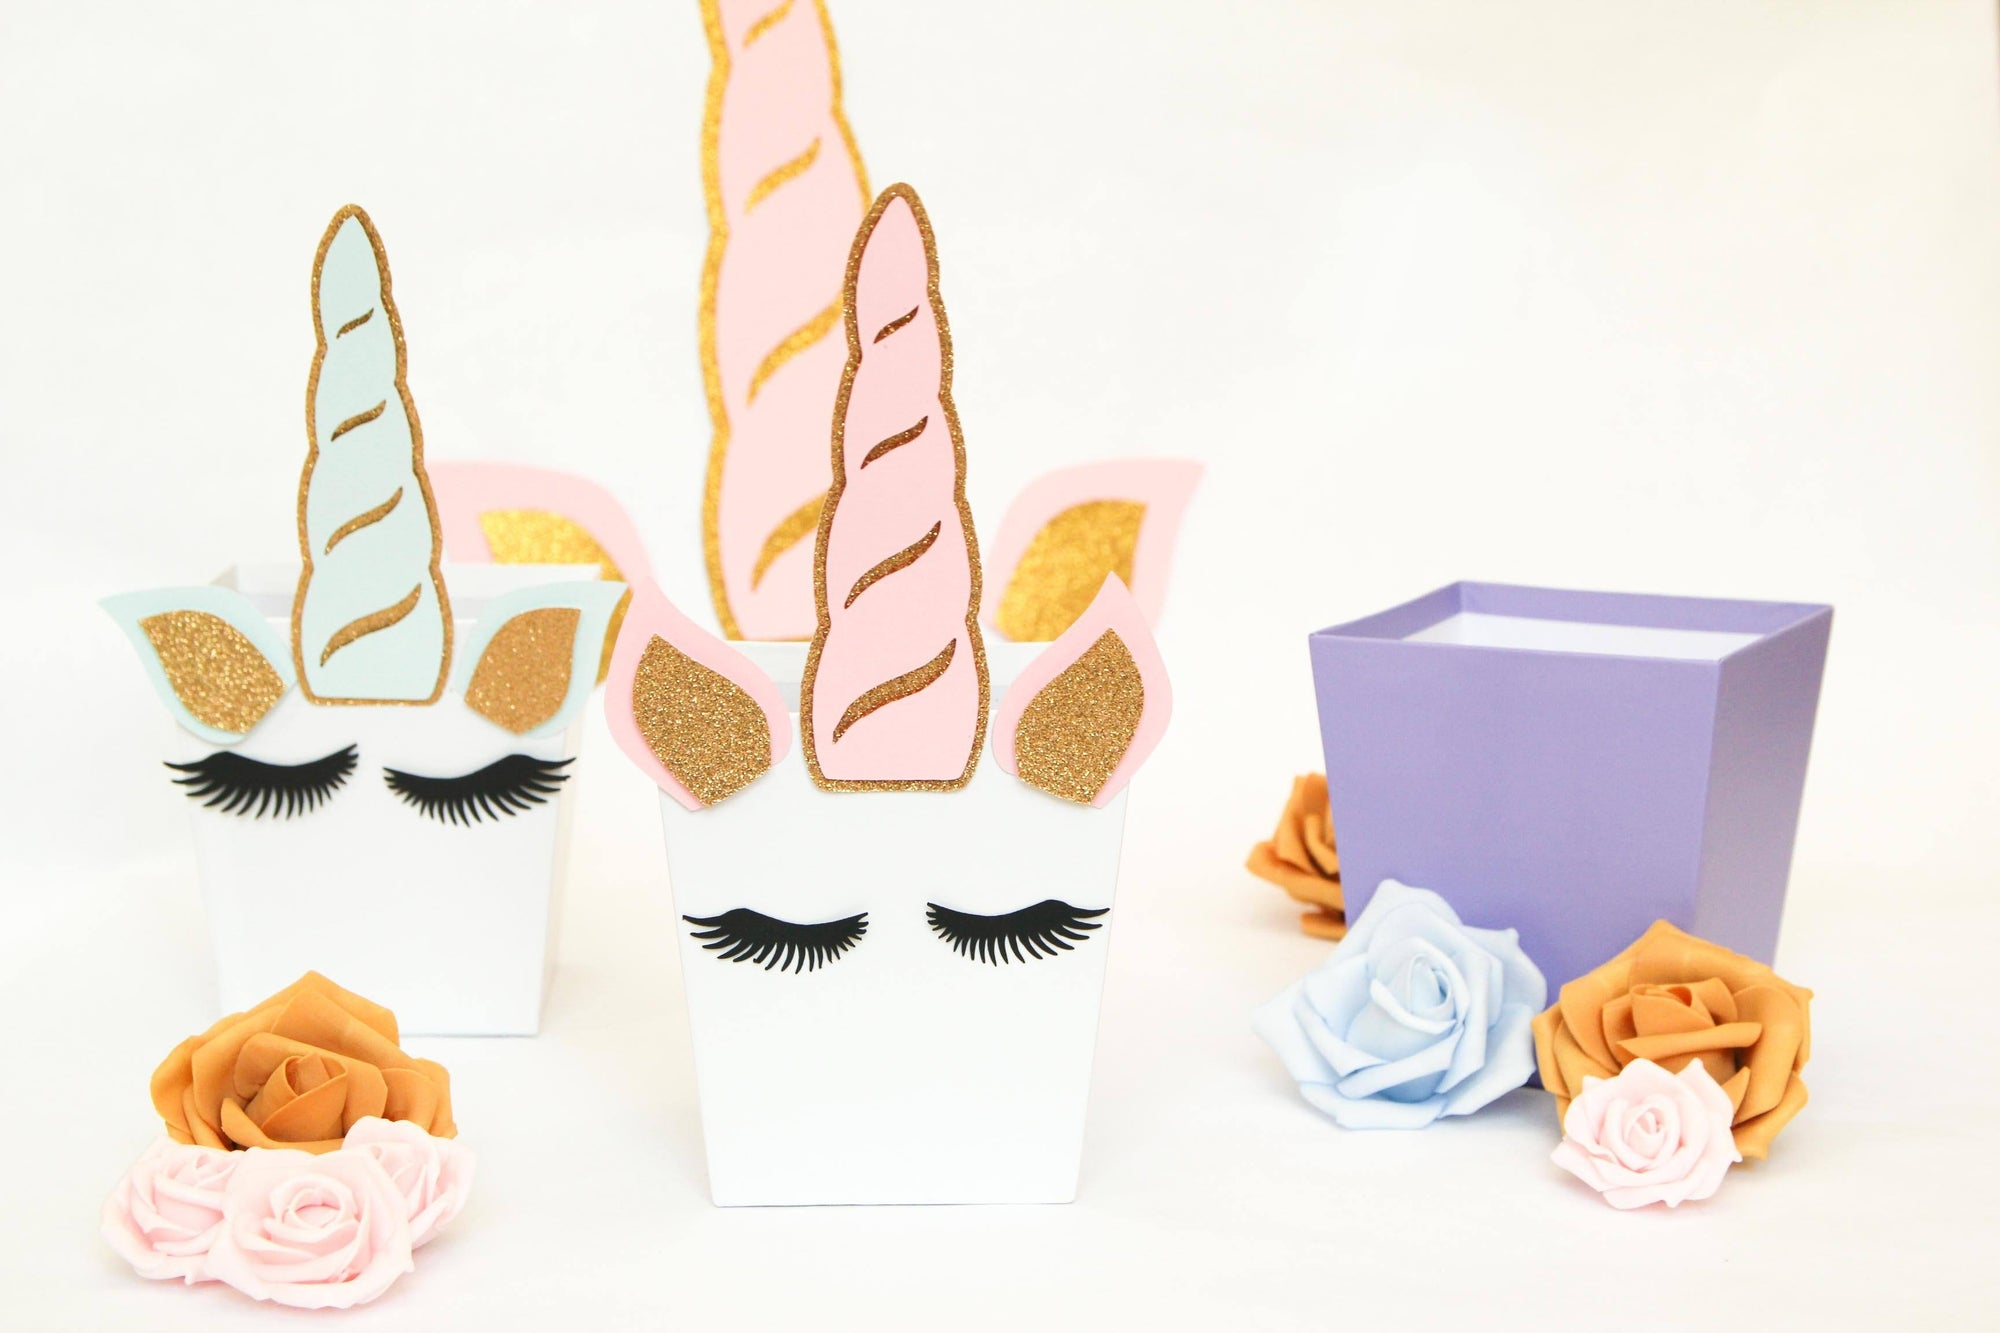 Unicorn Horn, Ears & Eyelash Decoration Die-cuts (1 set)